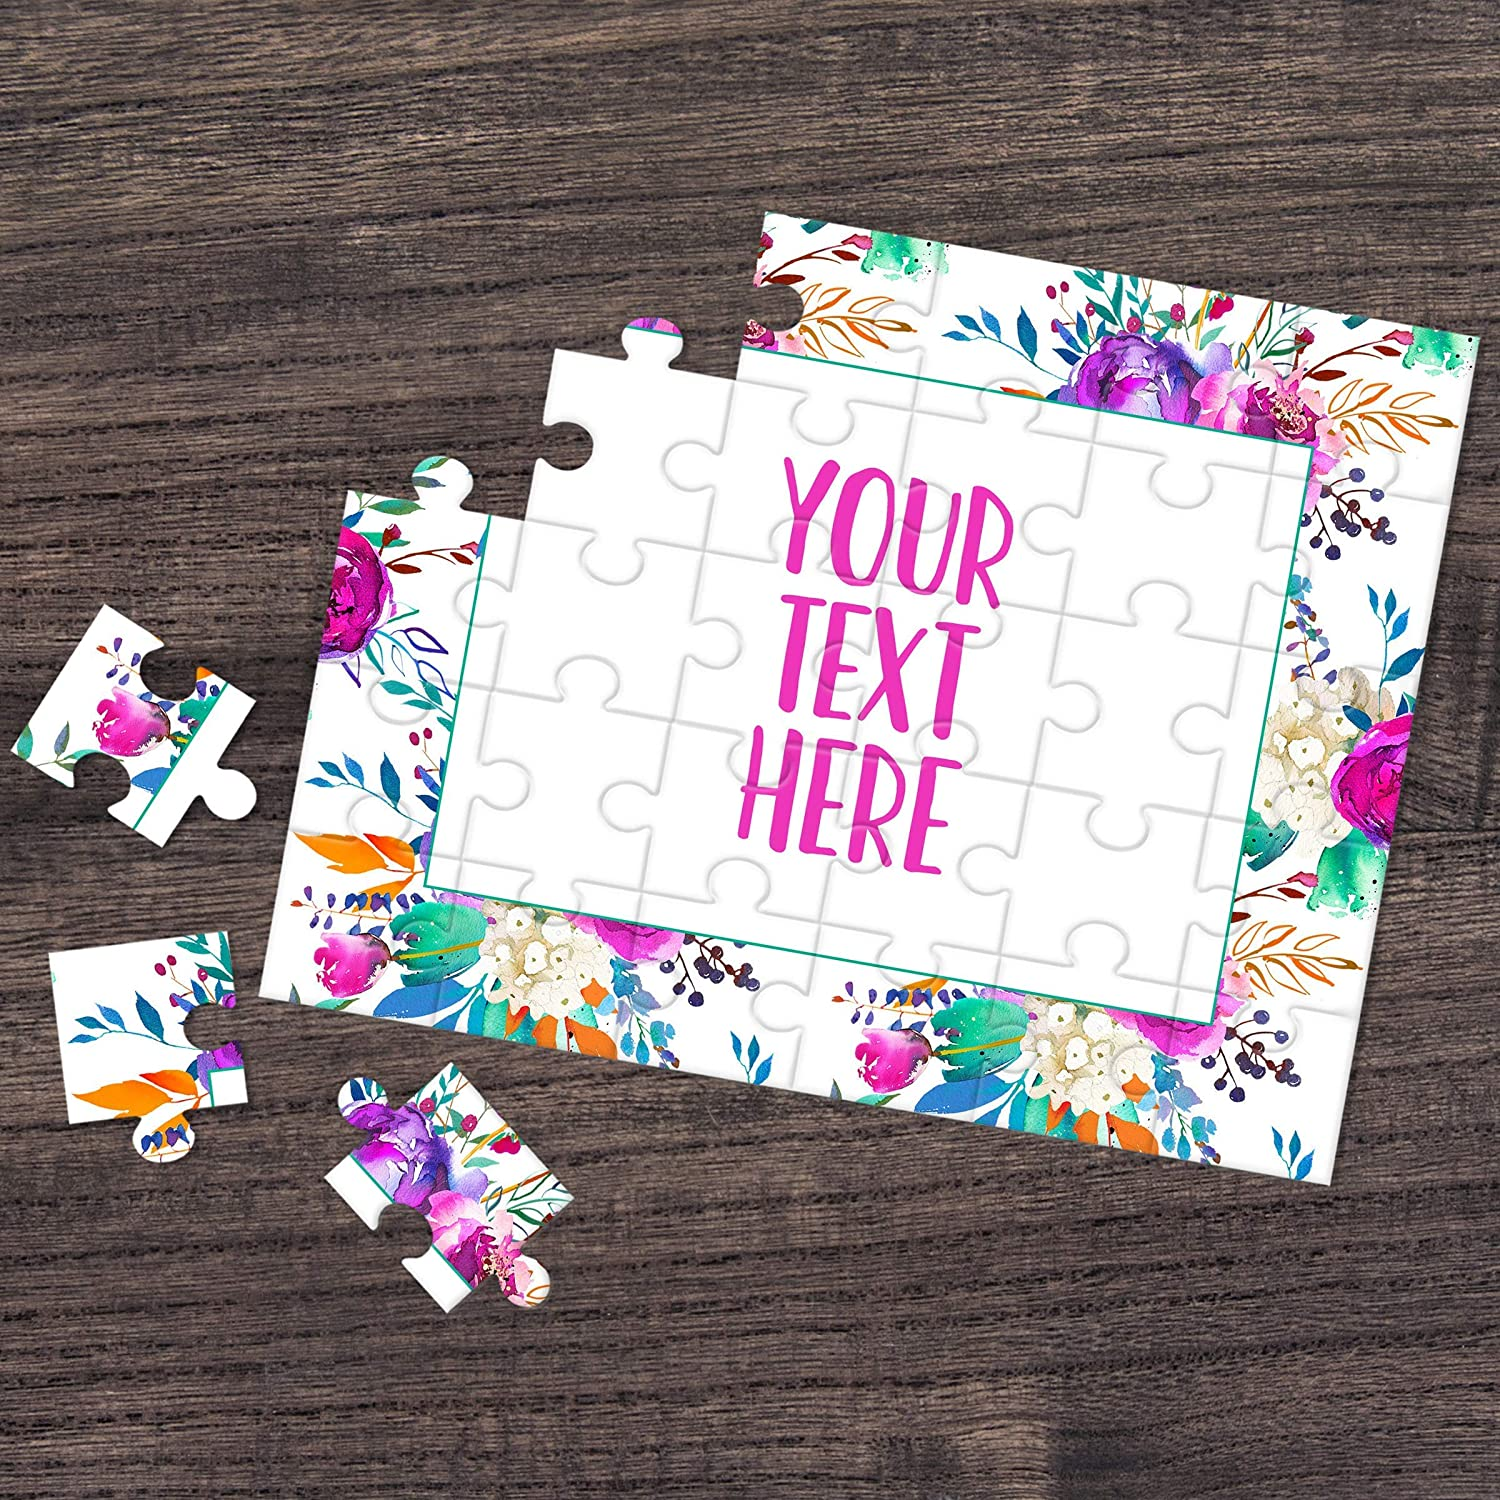 Custom Puzzle Personalized Puzzle Wedding Announcement Pregnancy Announcement CYOP0070 Announcement Ideas Create Your Own Puzzle